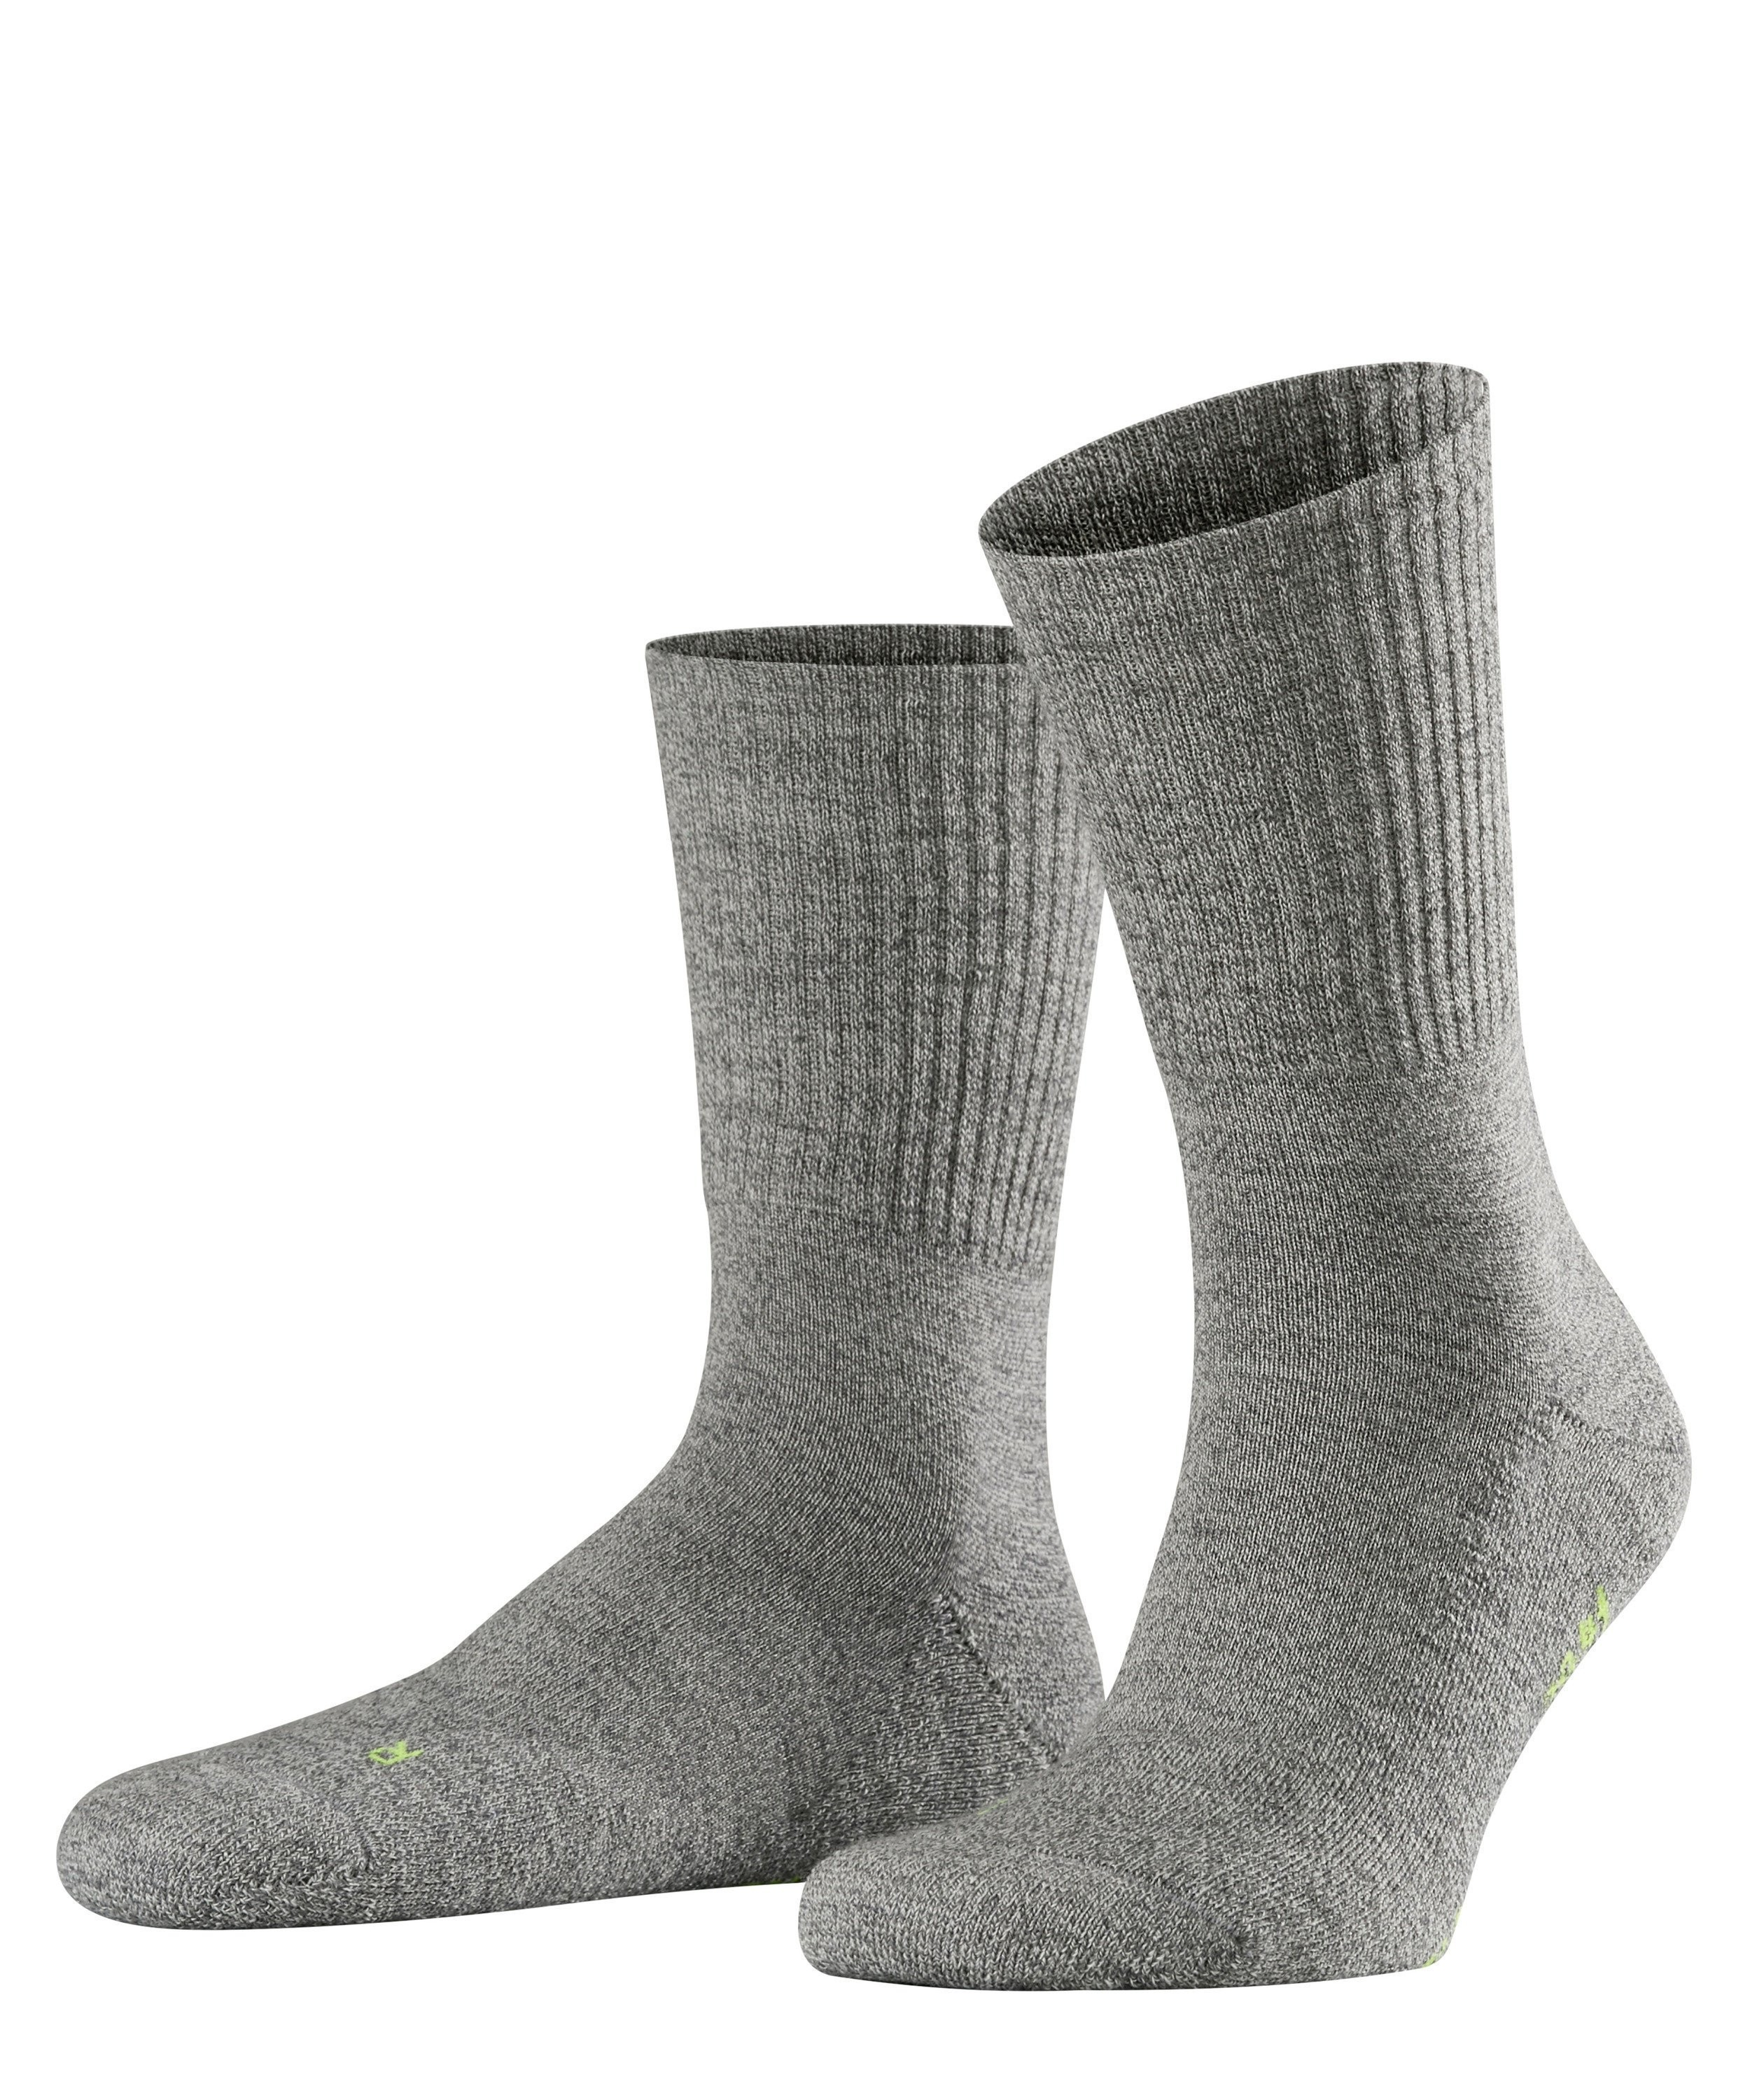 Chaussette de sport Unisexe - 66% Laine - Falke Men Walkie Light 16486 Gris Graphite Mel 3060